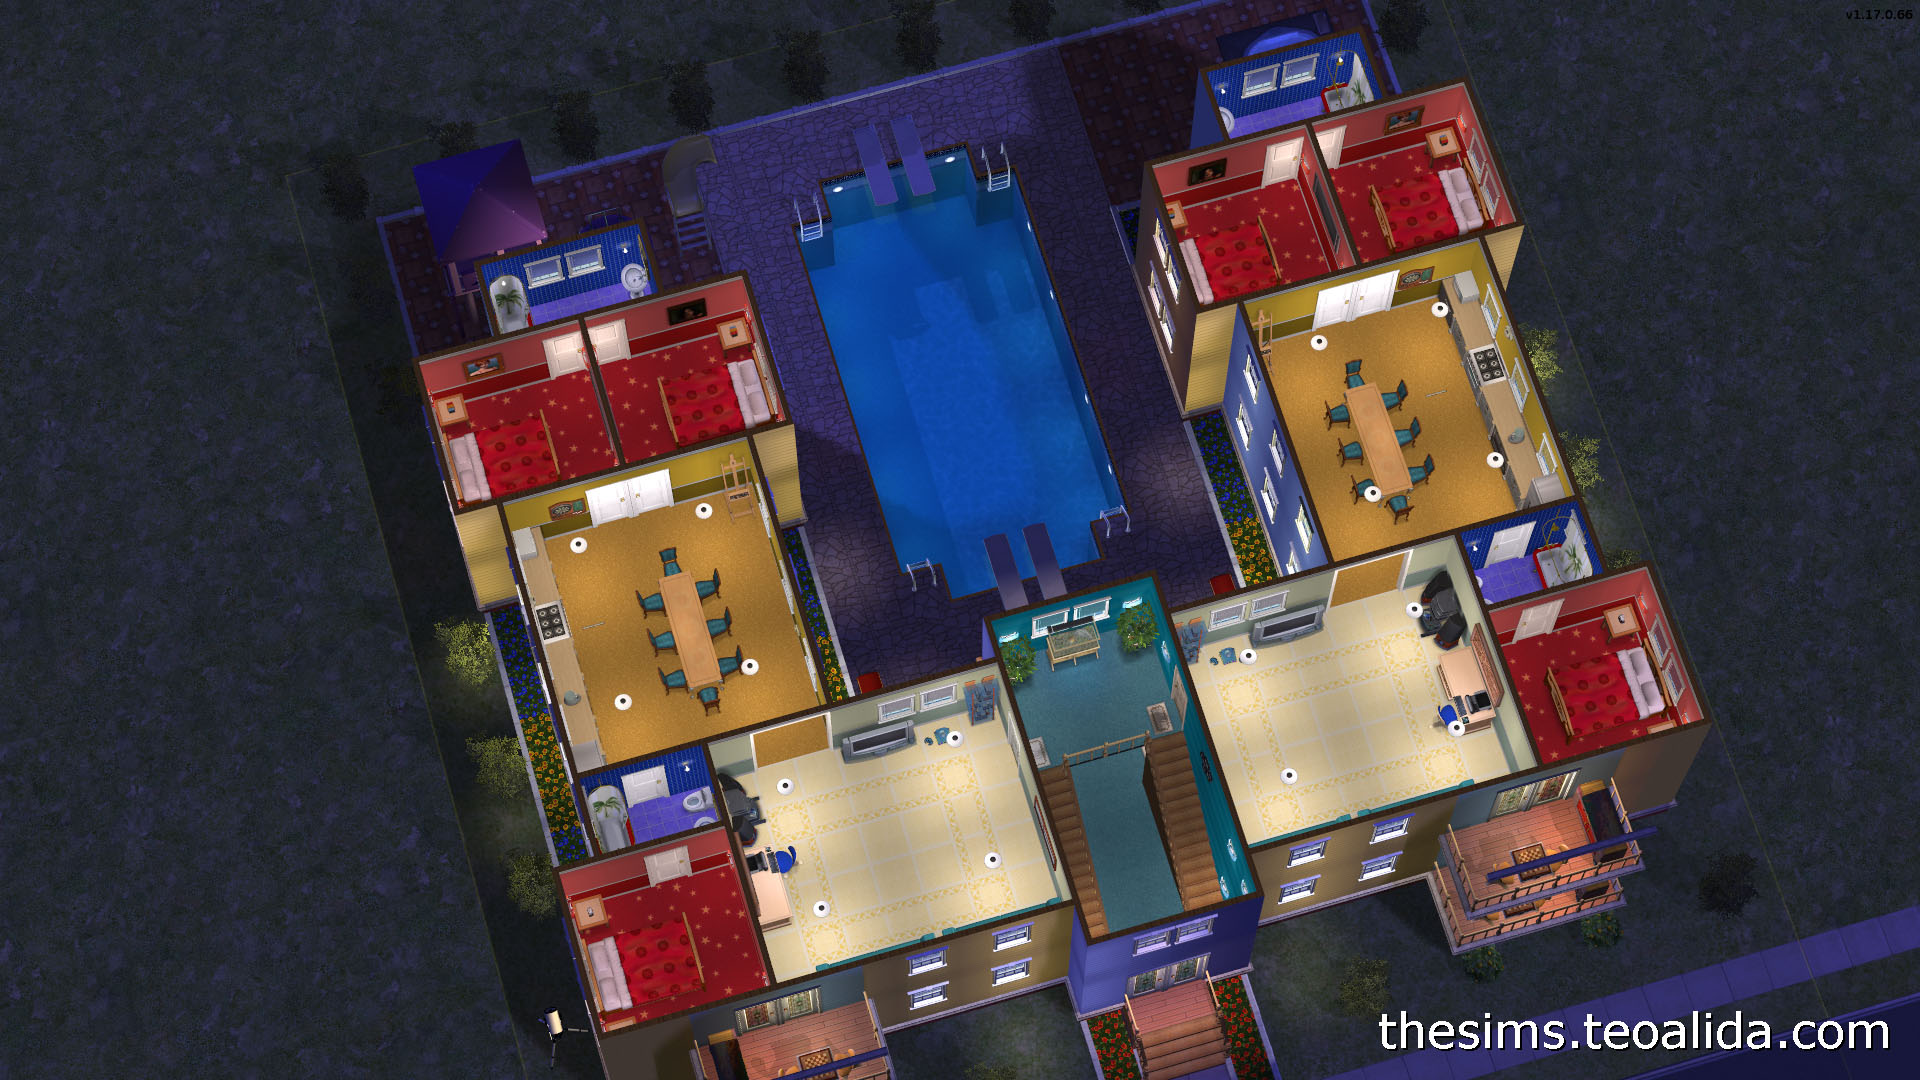 U Shaped Apartment Block For 4 Families The Sims Fan Page,Home Design Blueprints 1000 Sq Ft